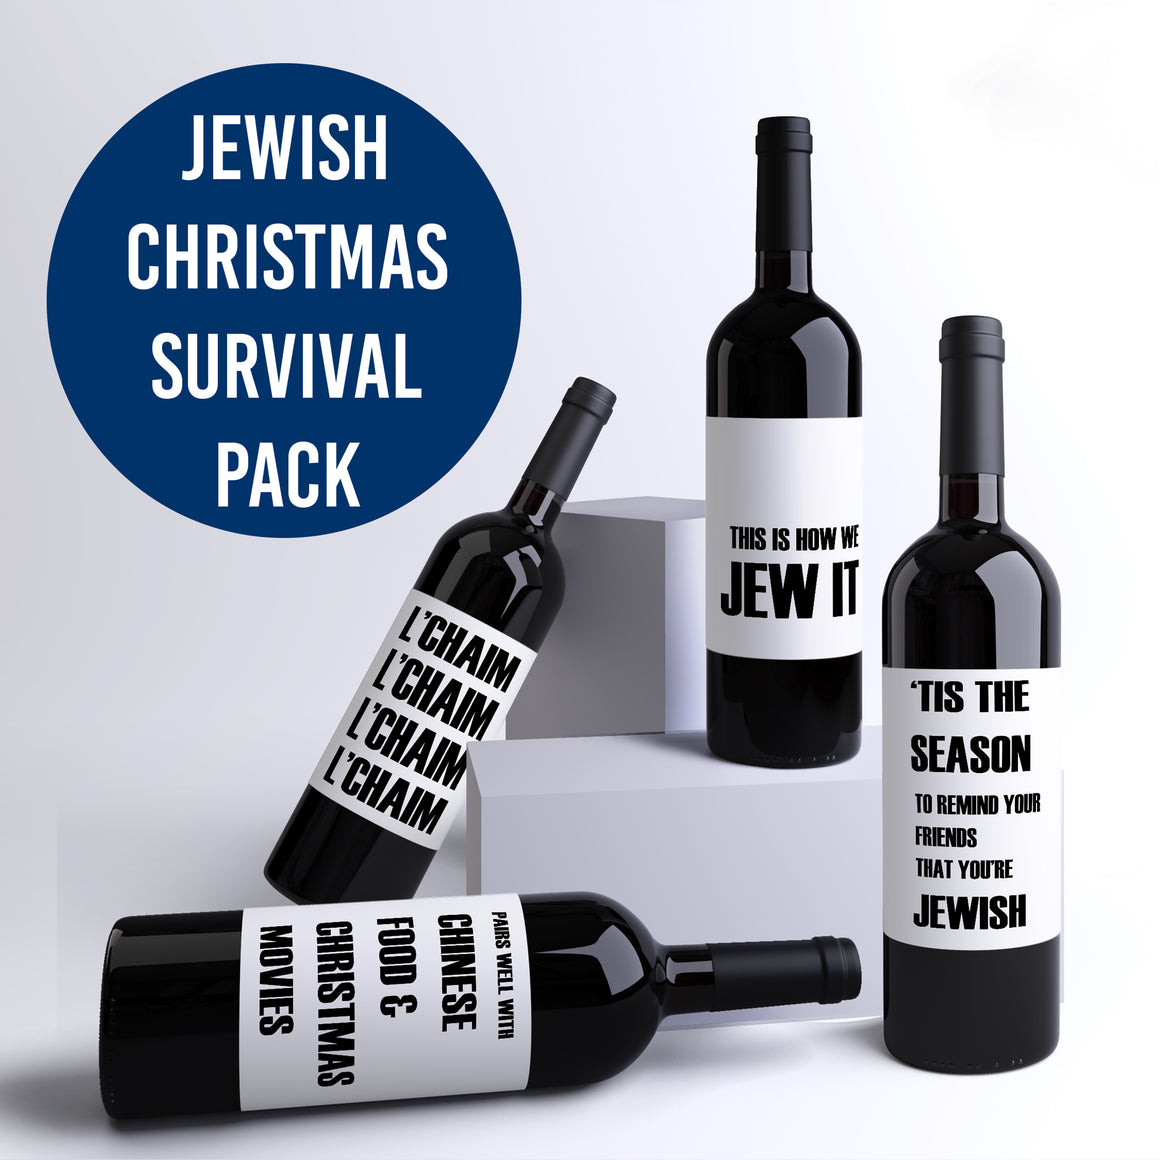 Christmas Survival Kit Jewish Wine Bottle Labels L'chaim